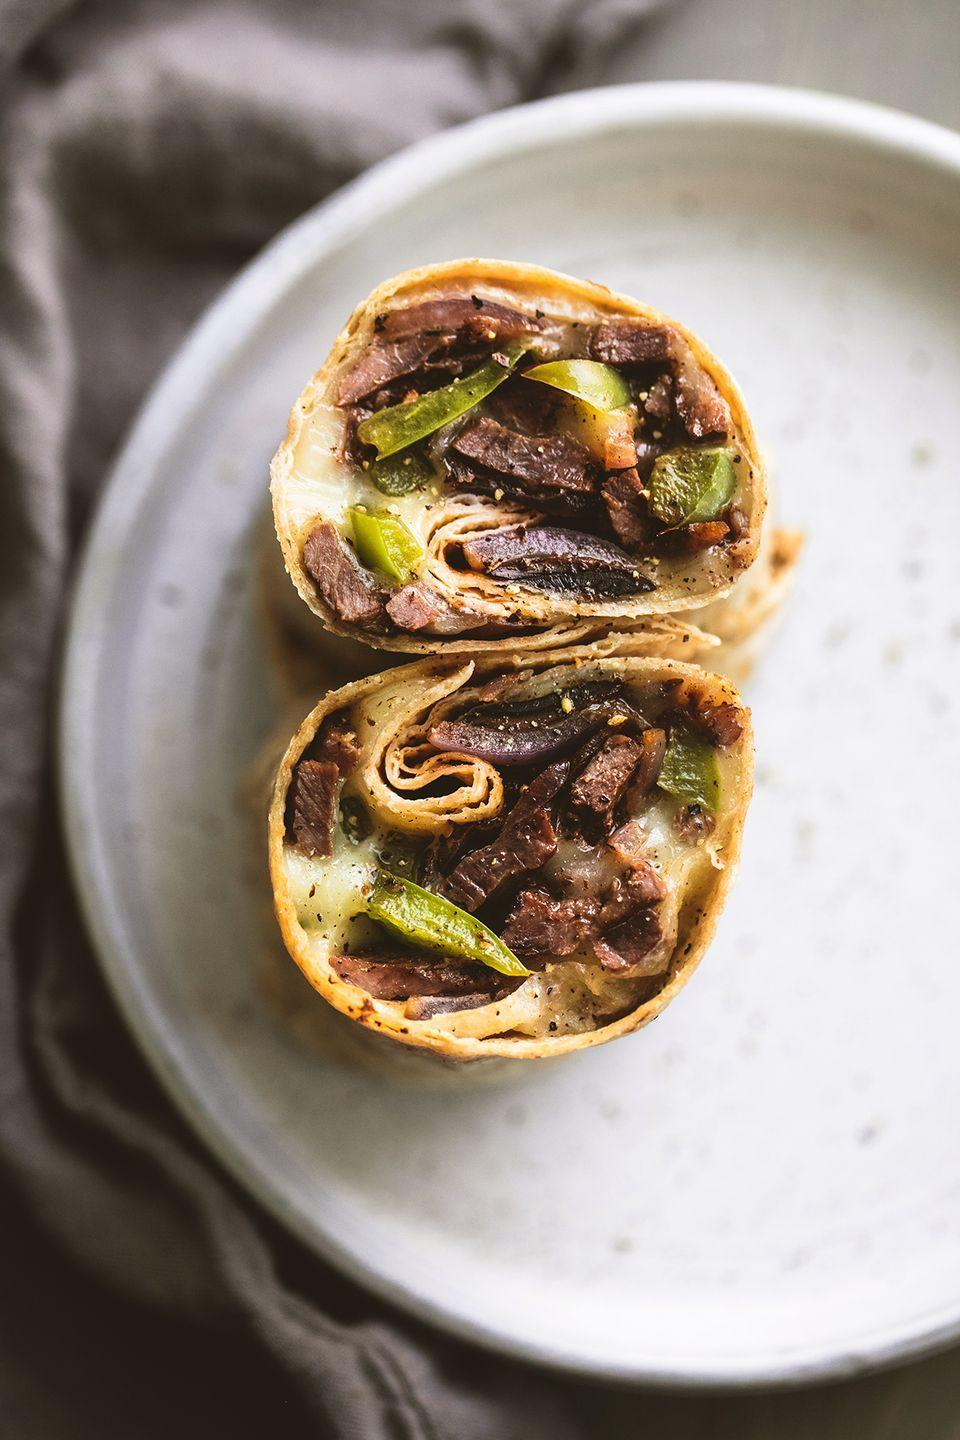 """<p>Same sandwich you love, brand new form.</p><p>Get the recipe from <a href=""""https://www.delish.com/cooking/recipe-ideas/recipes/a53593/philly-cheesesteak-wraps-recipe/"""" rel=""""nofollow noopener"""" target=""""_blank"""" data-ylk=""""slk:Delish"""" class=""""link rapid-noclick-resp"""">Delish</a>. </p>"""